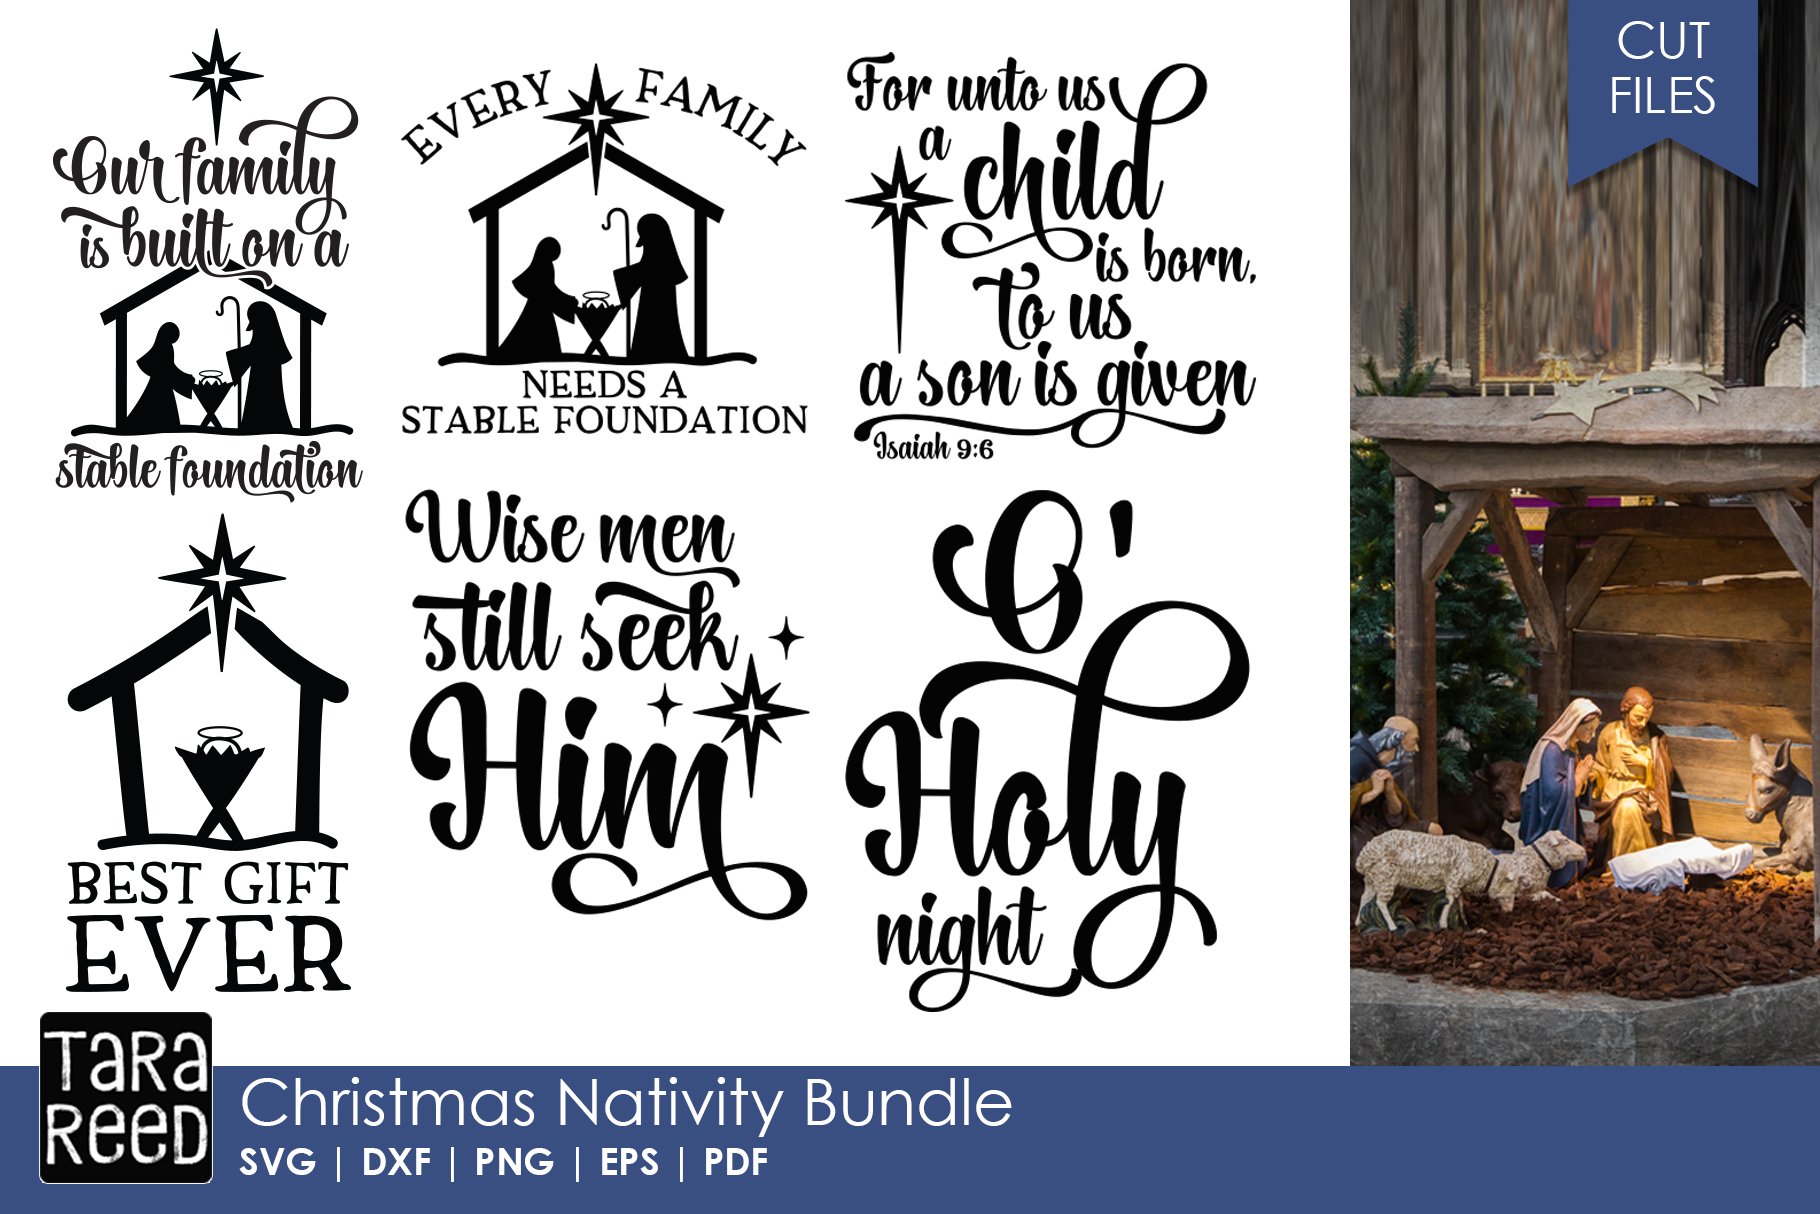 Christian Christmas MEGA Bundle - SVG Files for Crafters example image 4